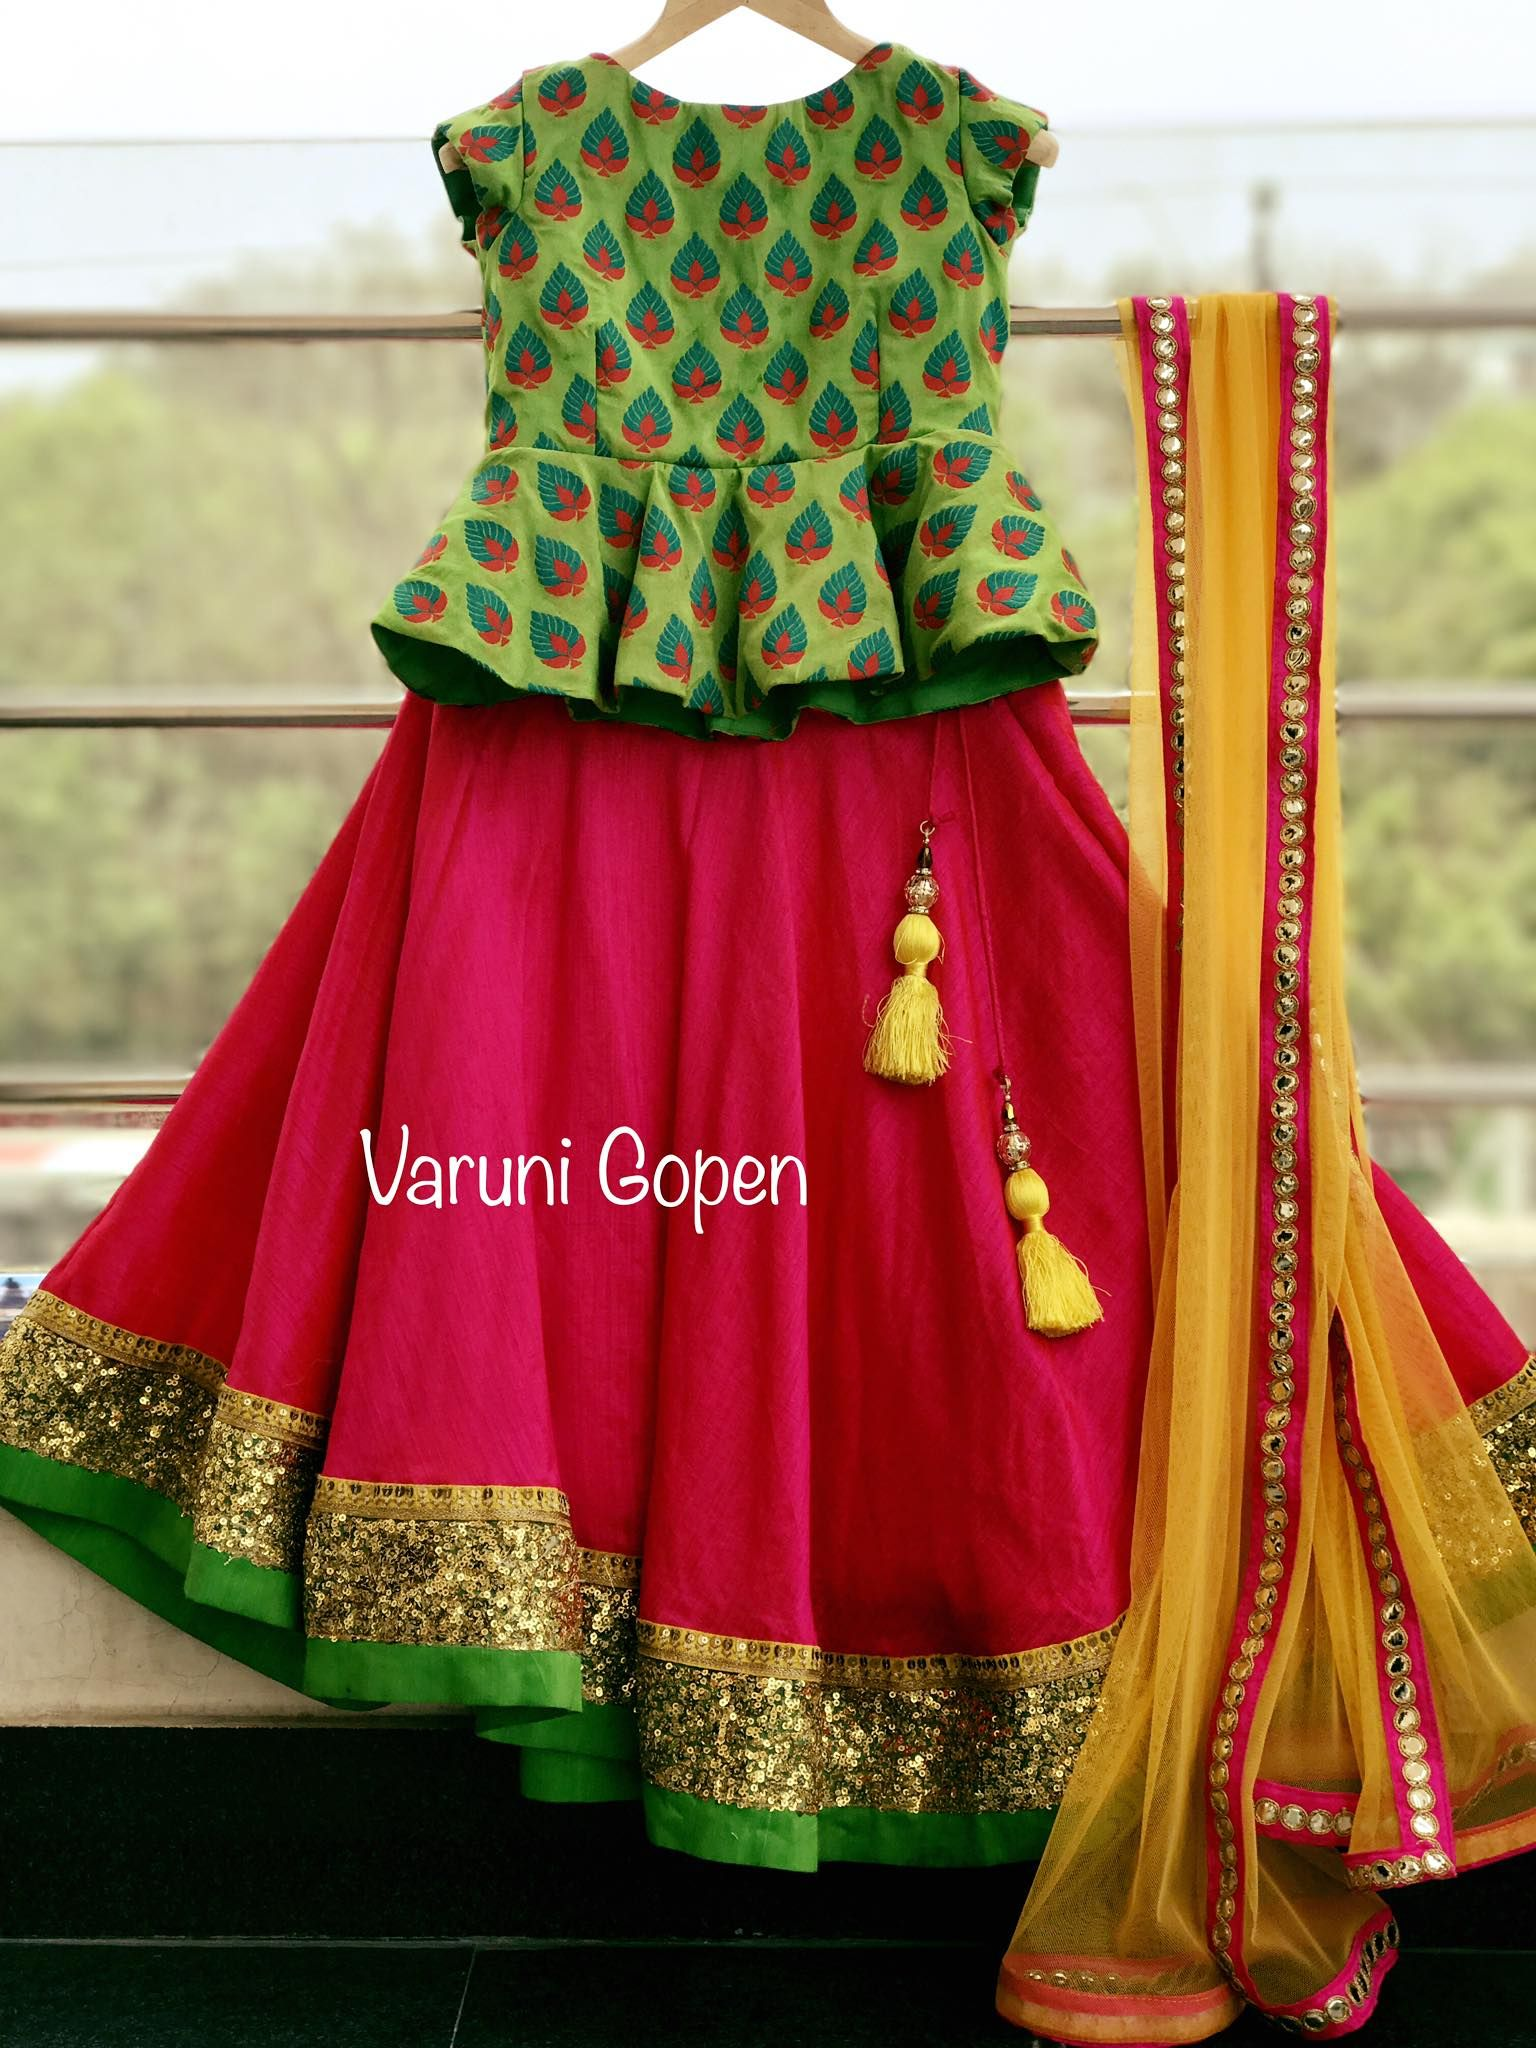 c0e1aaf97e7 To buy this outfit Mail to varunigopen gmail.com WhatsApp 9849125889 ...